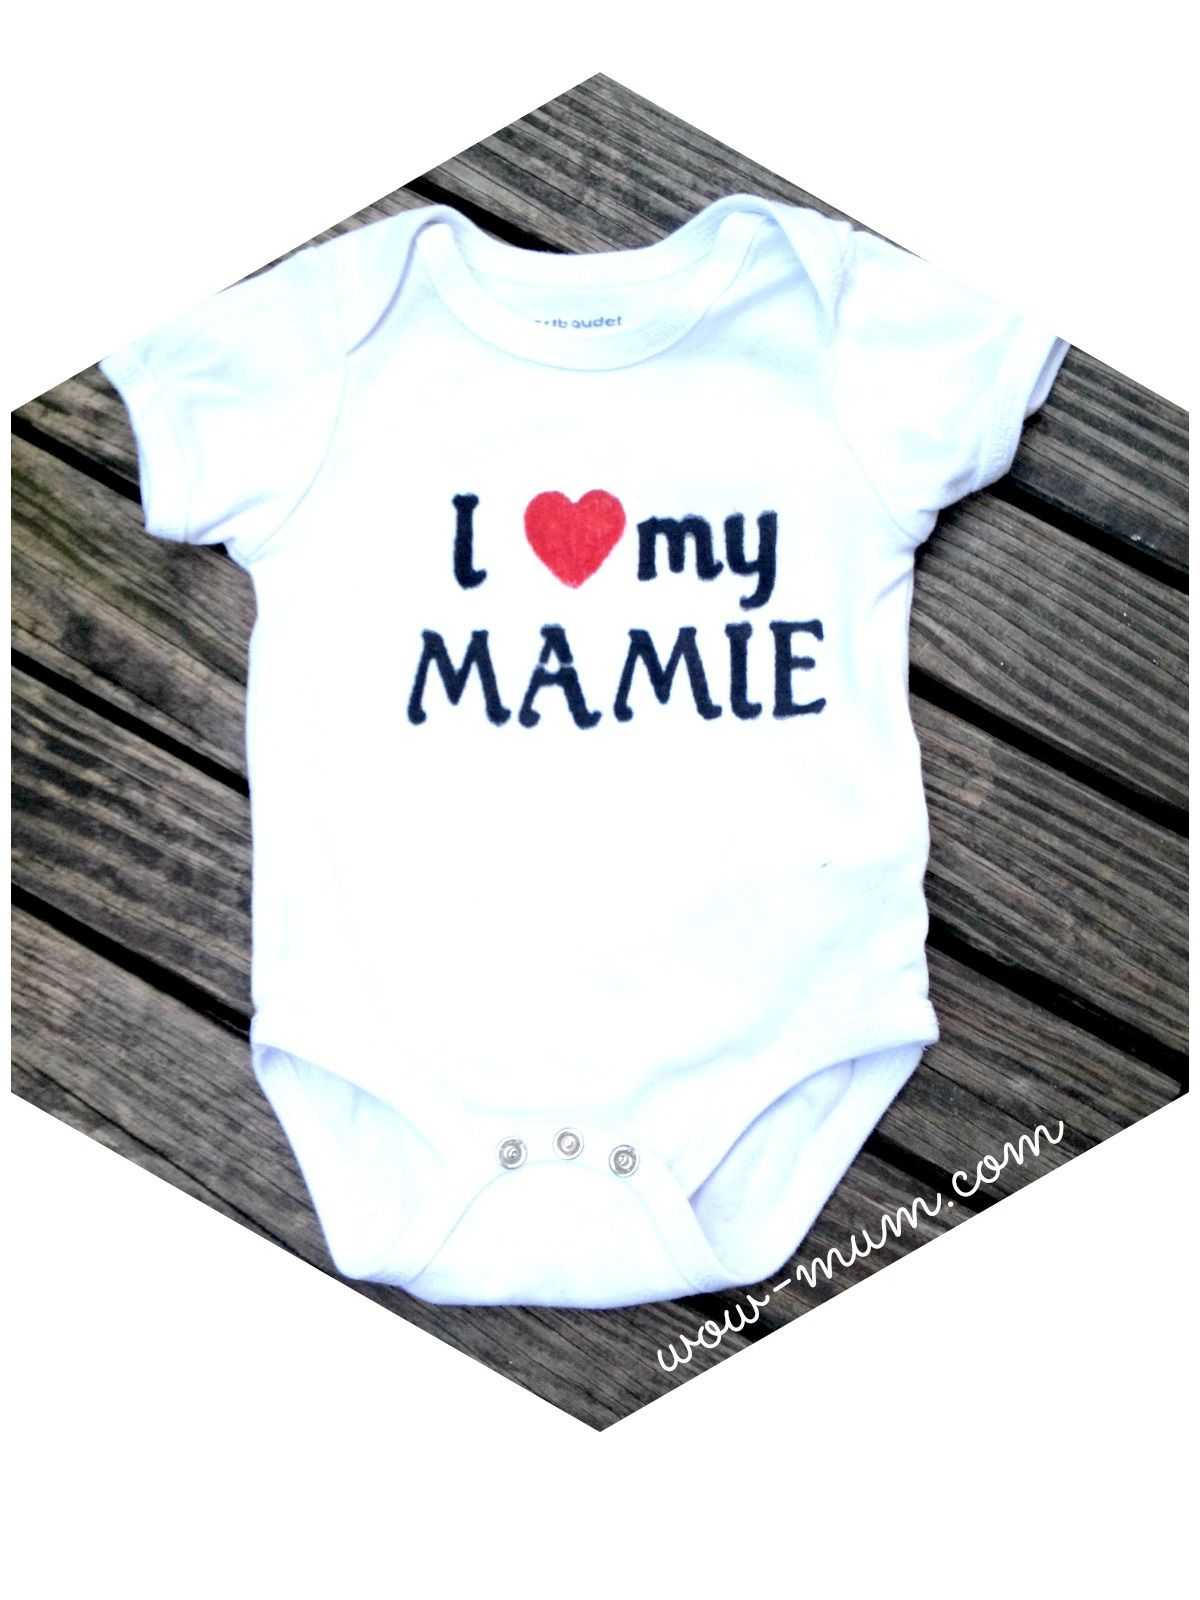 Do It Yourself : customiser un body &quot&#x3B;I Love my Mamie&quot&#x3B;